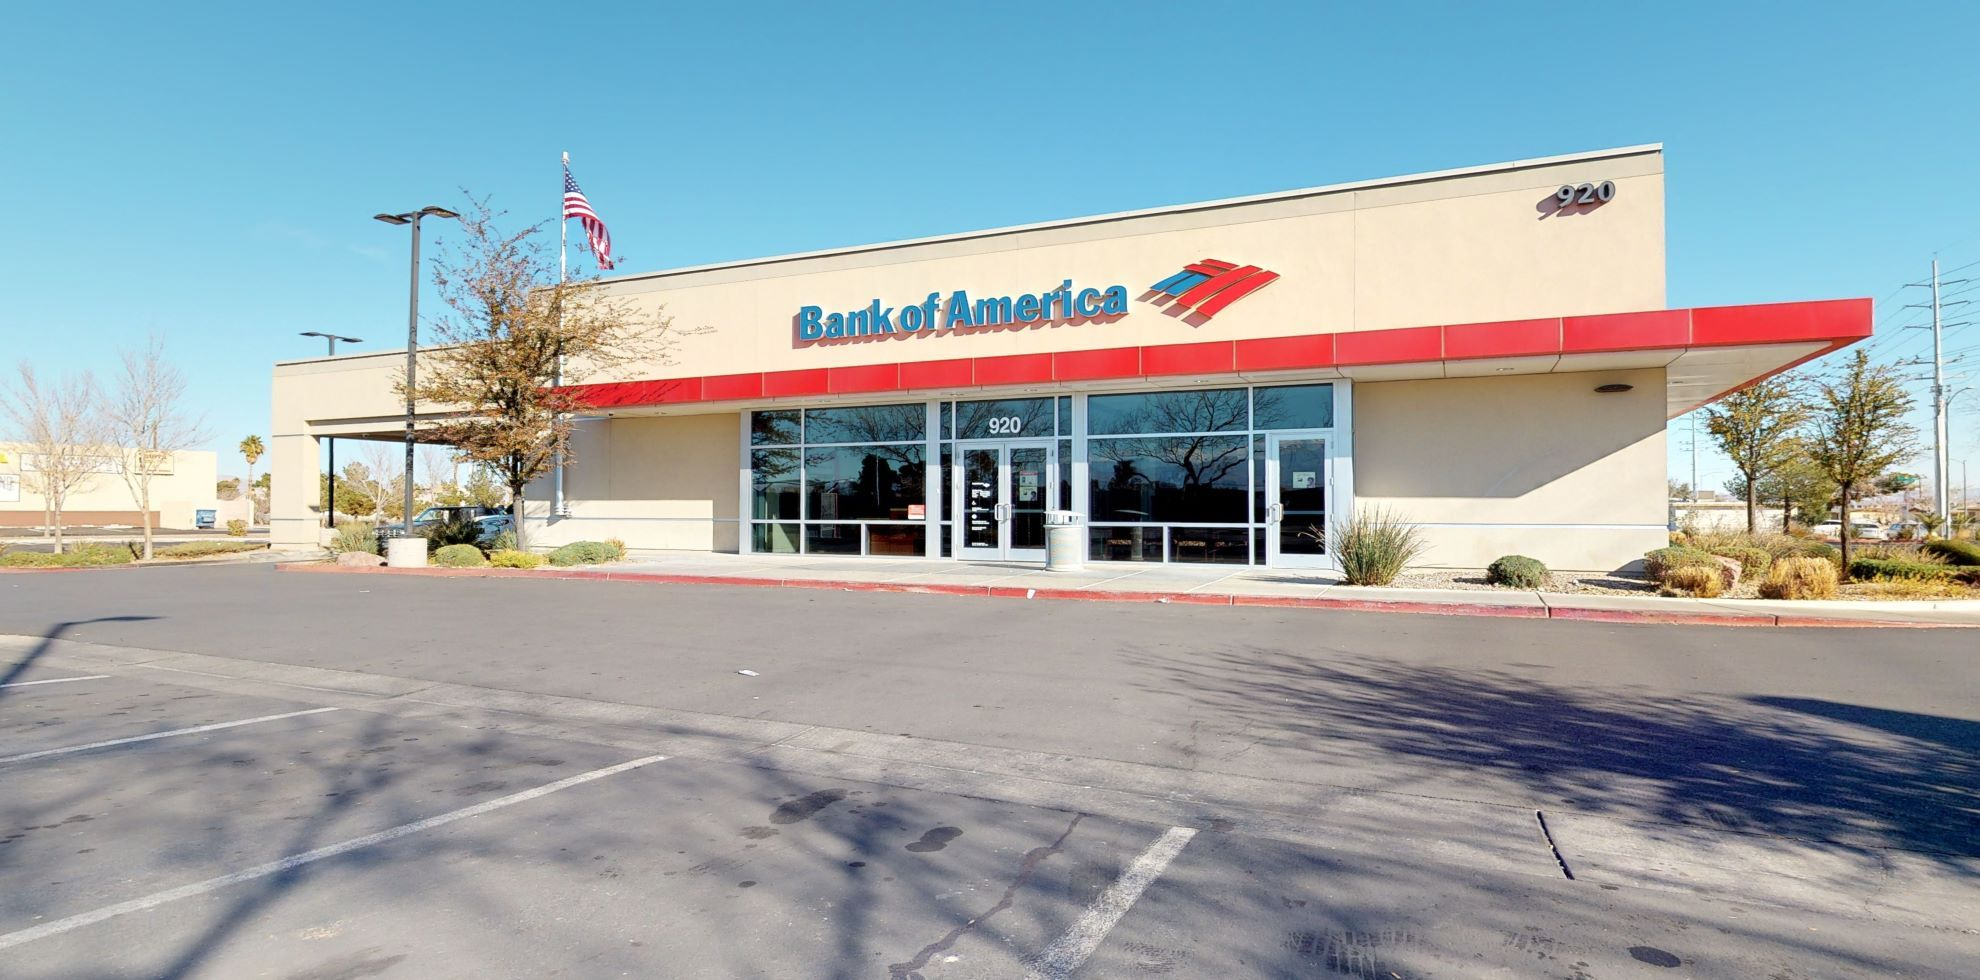 Bank of America financial center with drive-thru ATM | 920 N Martin Luther King Blvd, Las Vegas, NV 89106